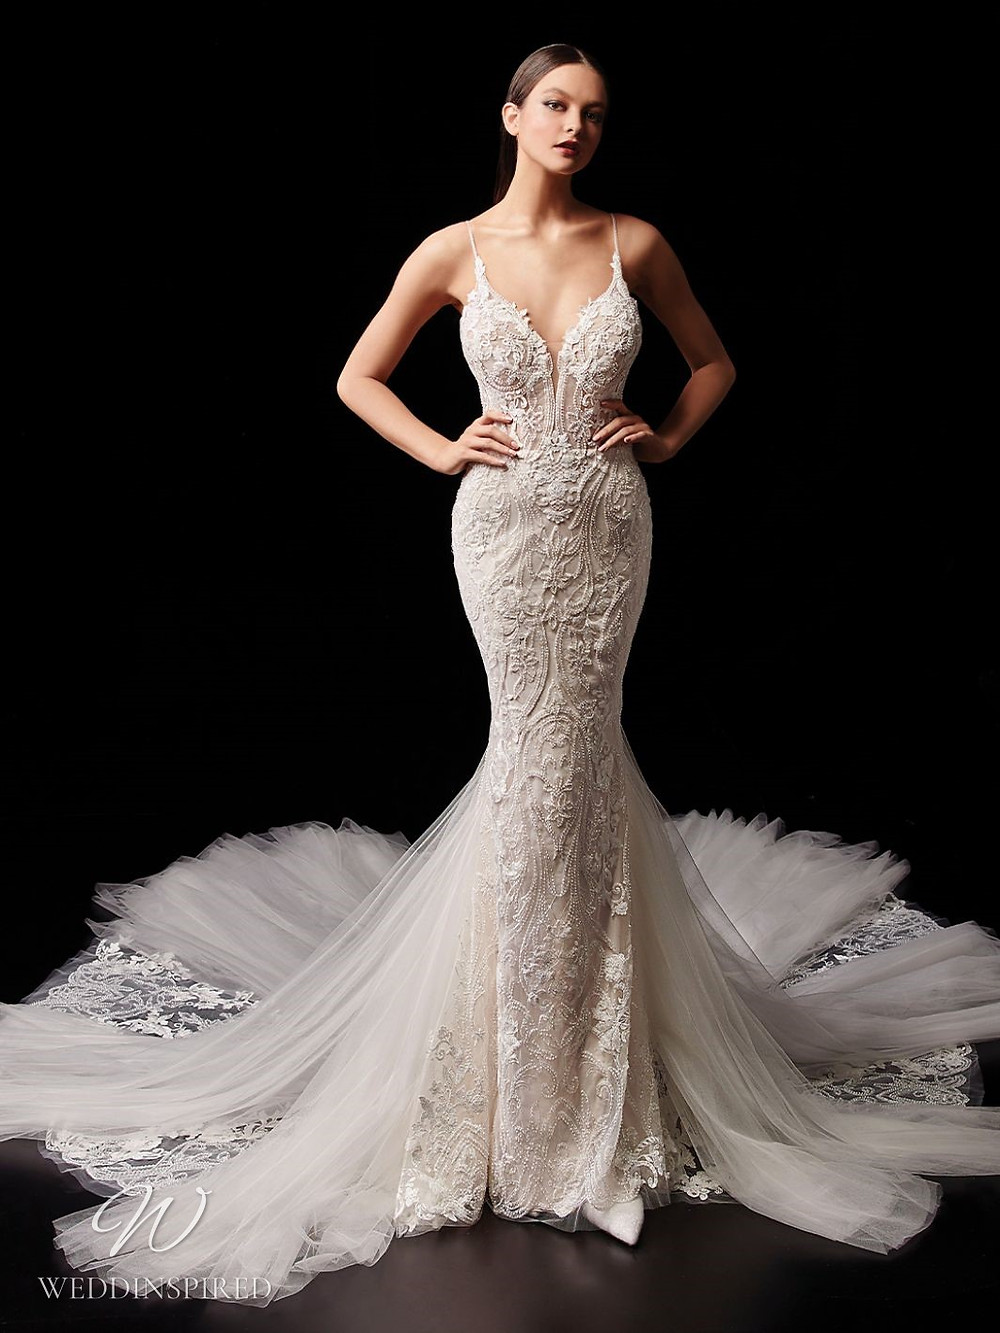 An Enzoani lace and tulle mermaid wedding dress with thin straps and a train